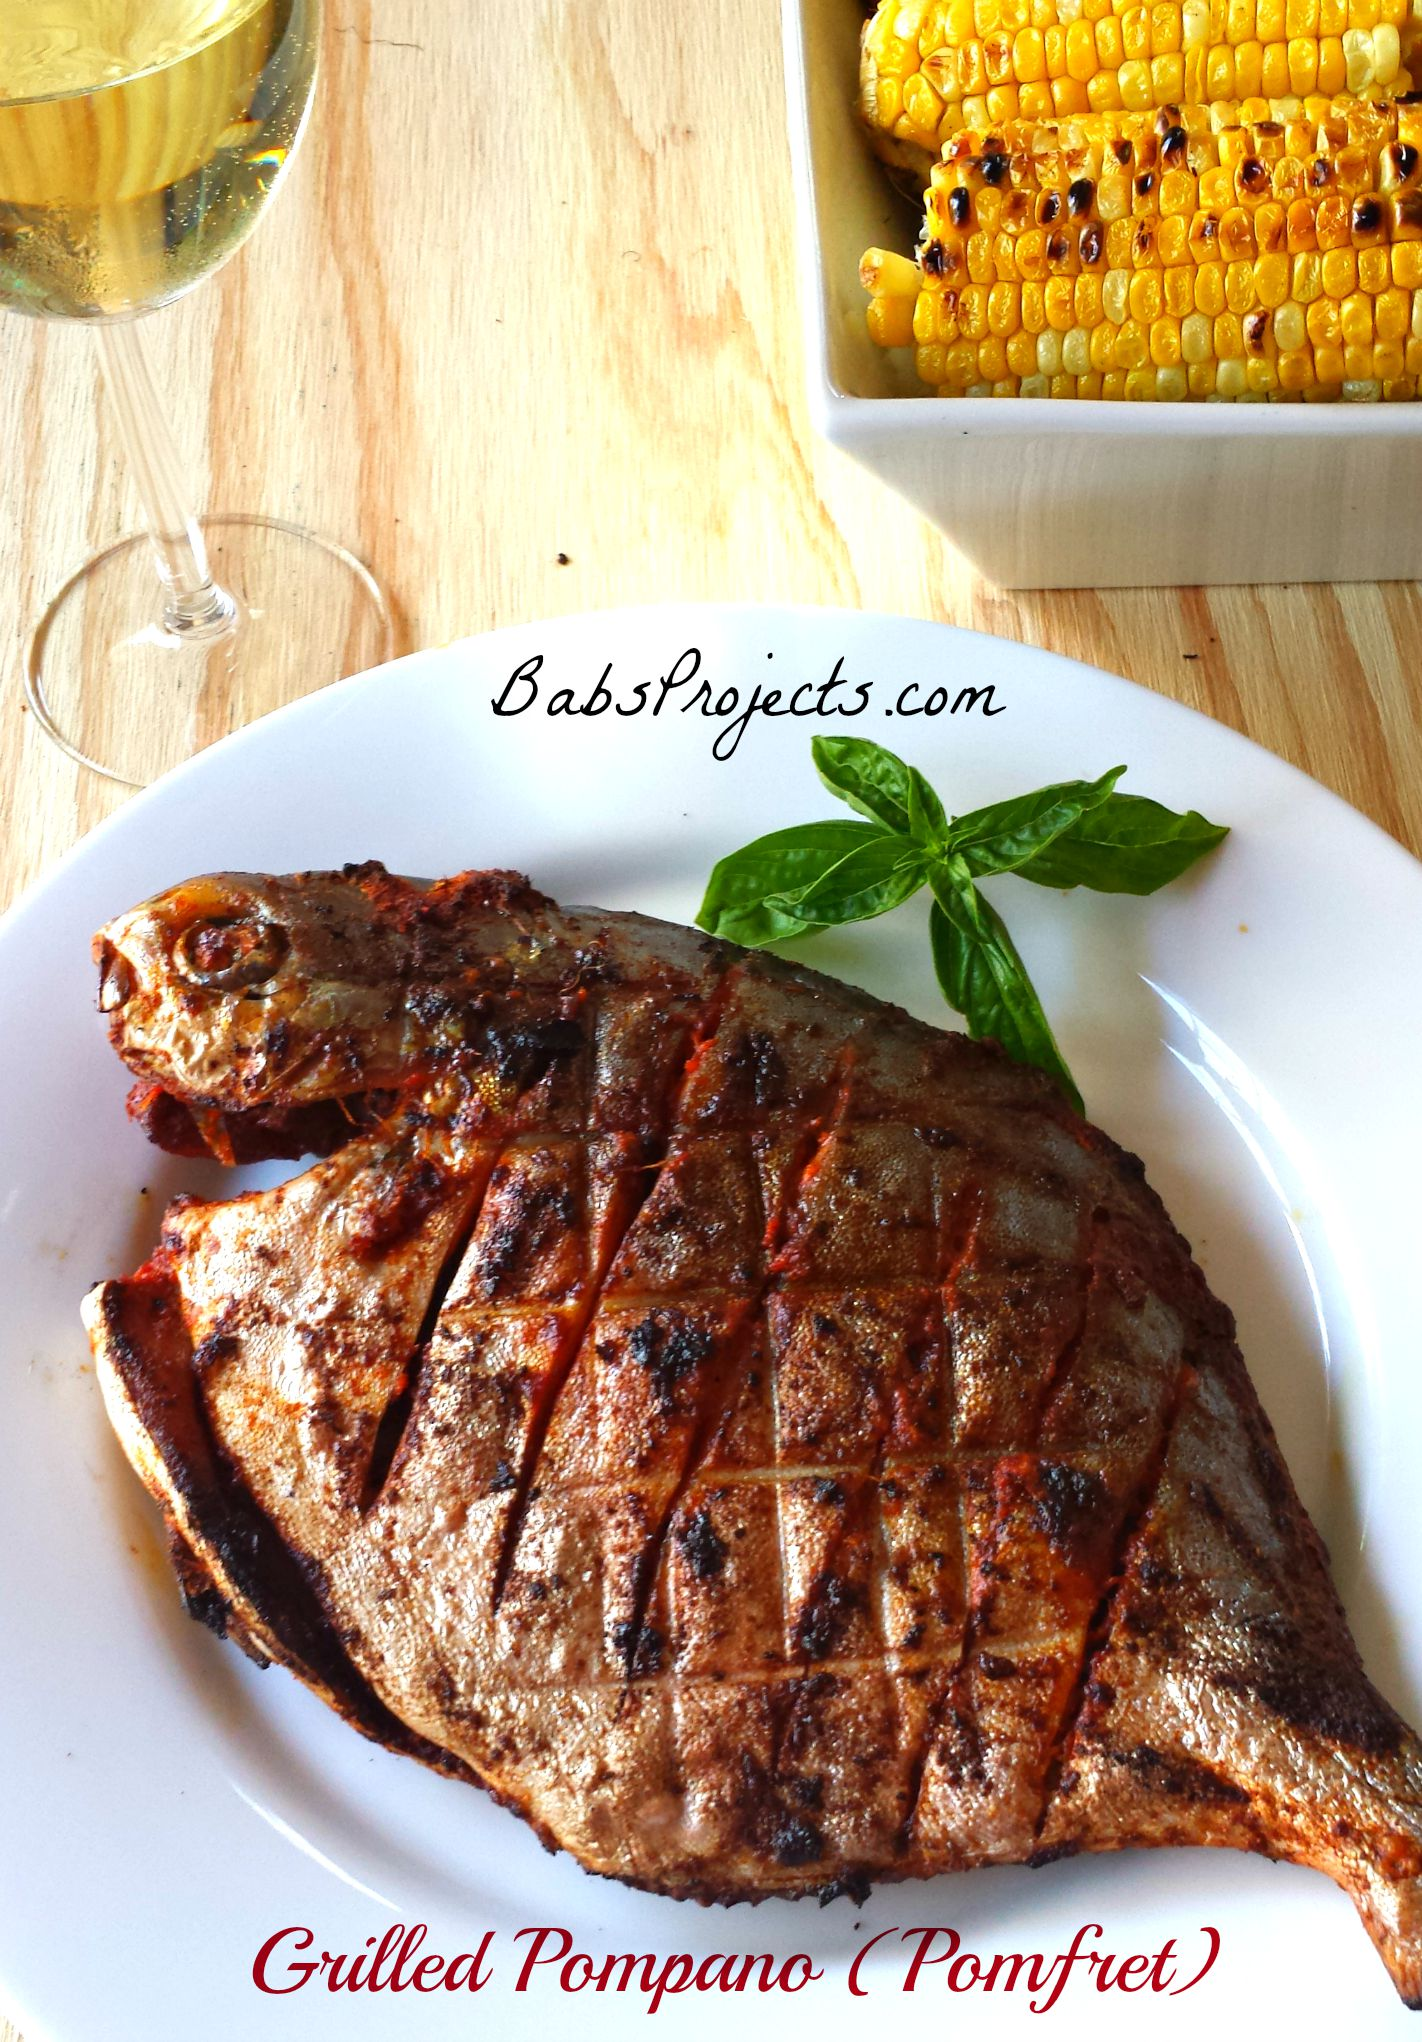 Grilled pompano pomfret babs projects for Pompano fish recipes